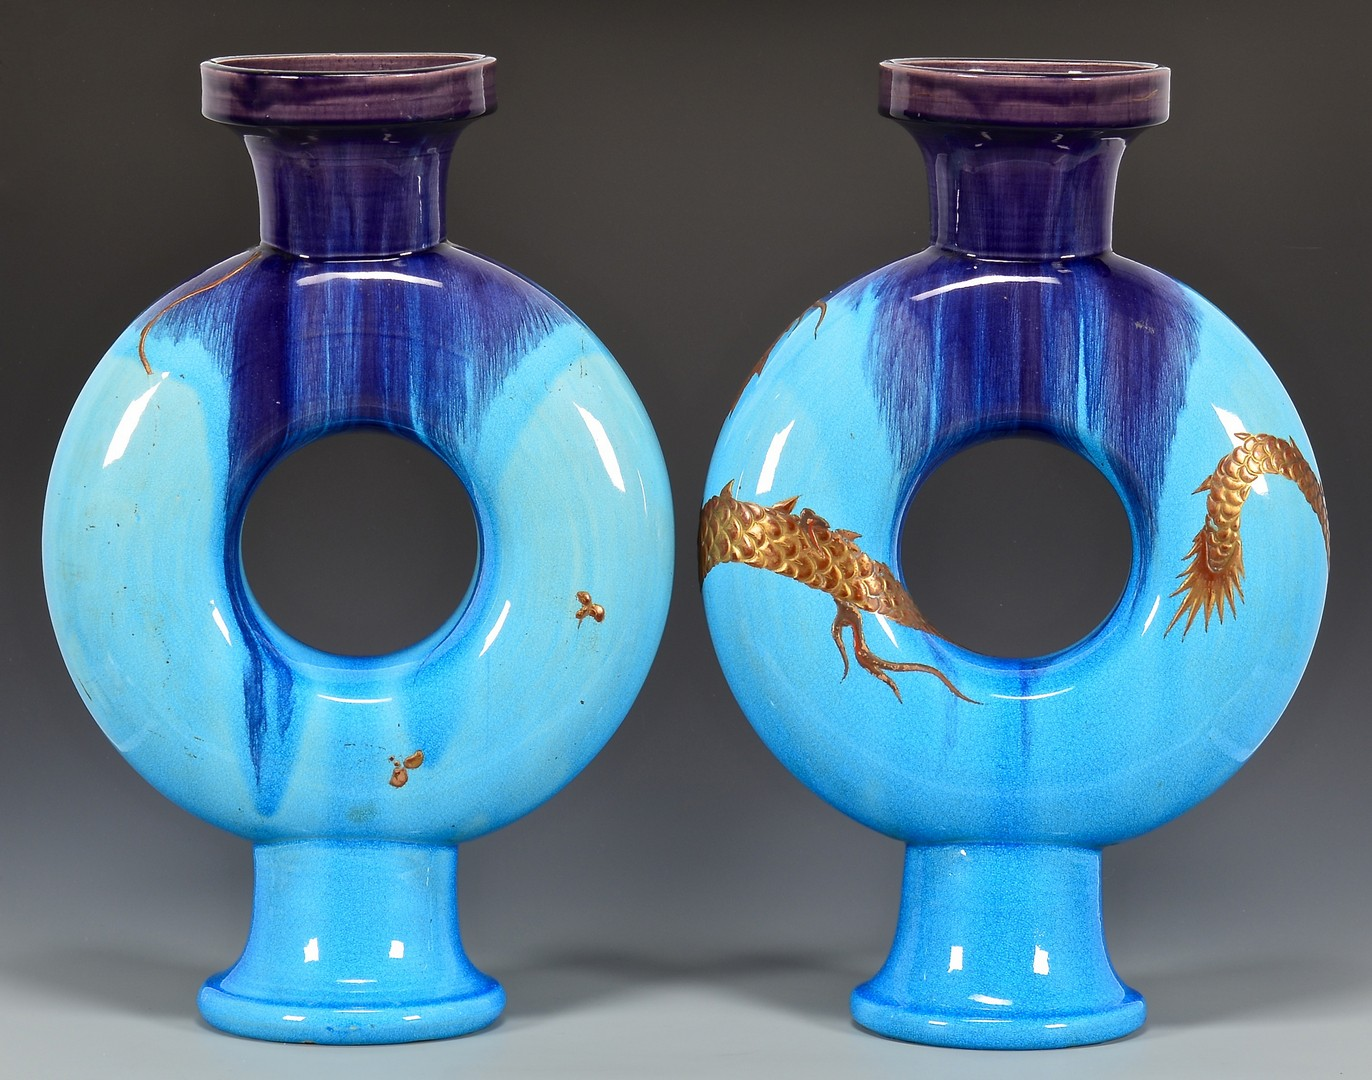 Lot 742: Pr. French Glazed Ceramic Flasks